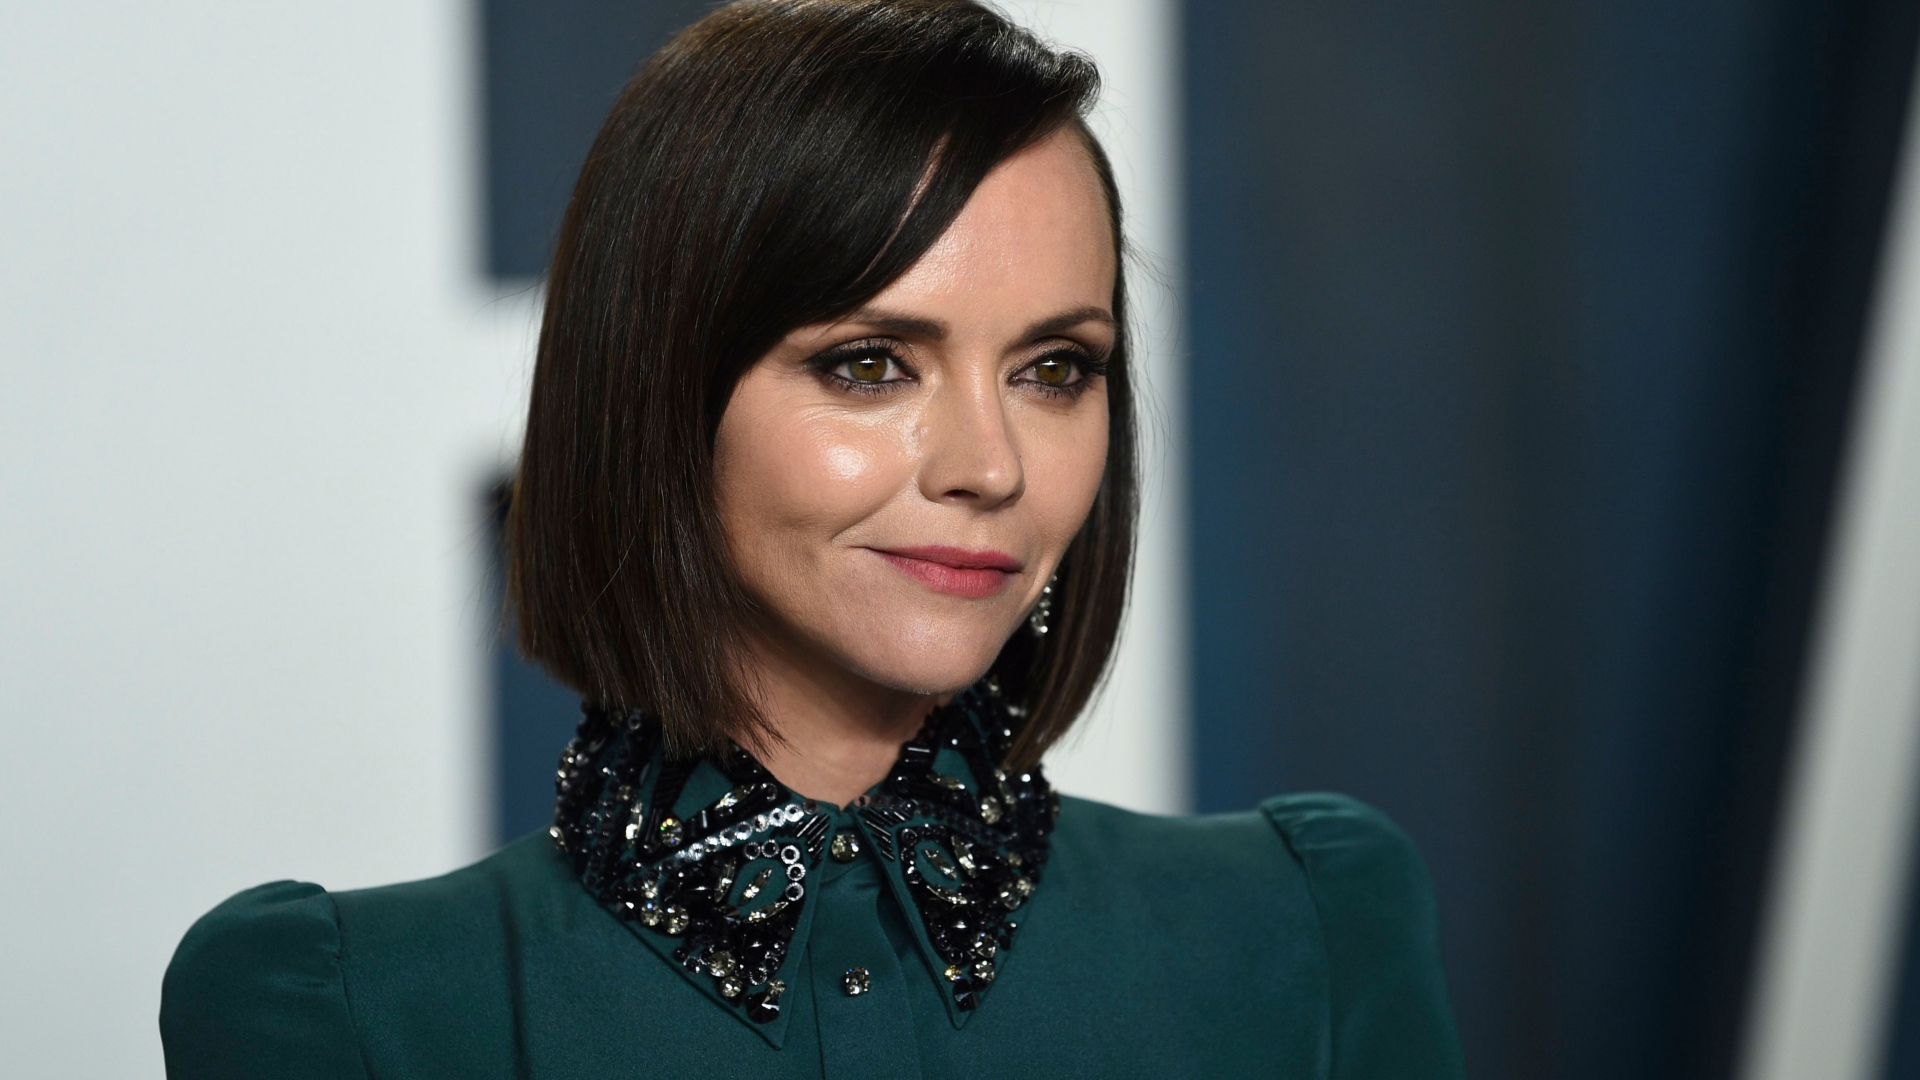 Christina Ricci Files for Divorce From Producer Husband After 7 Years